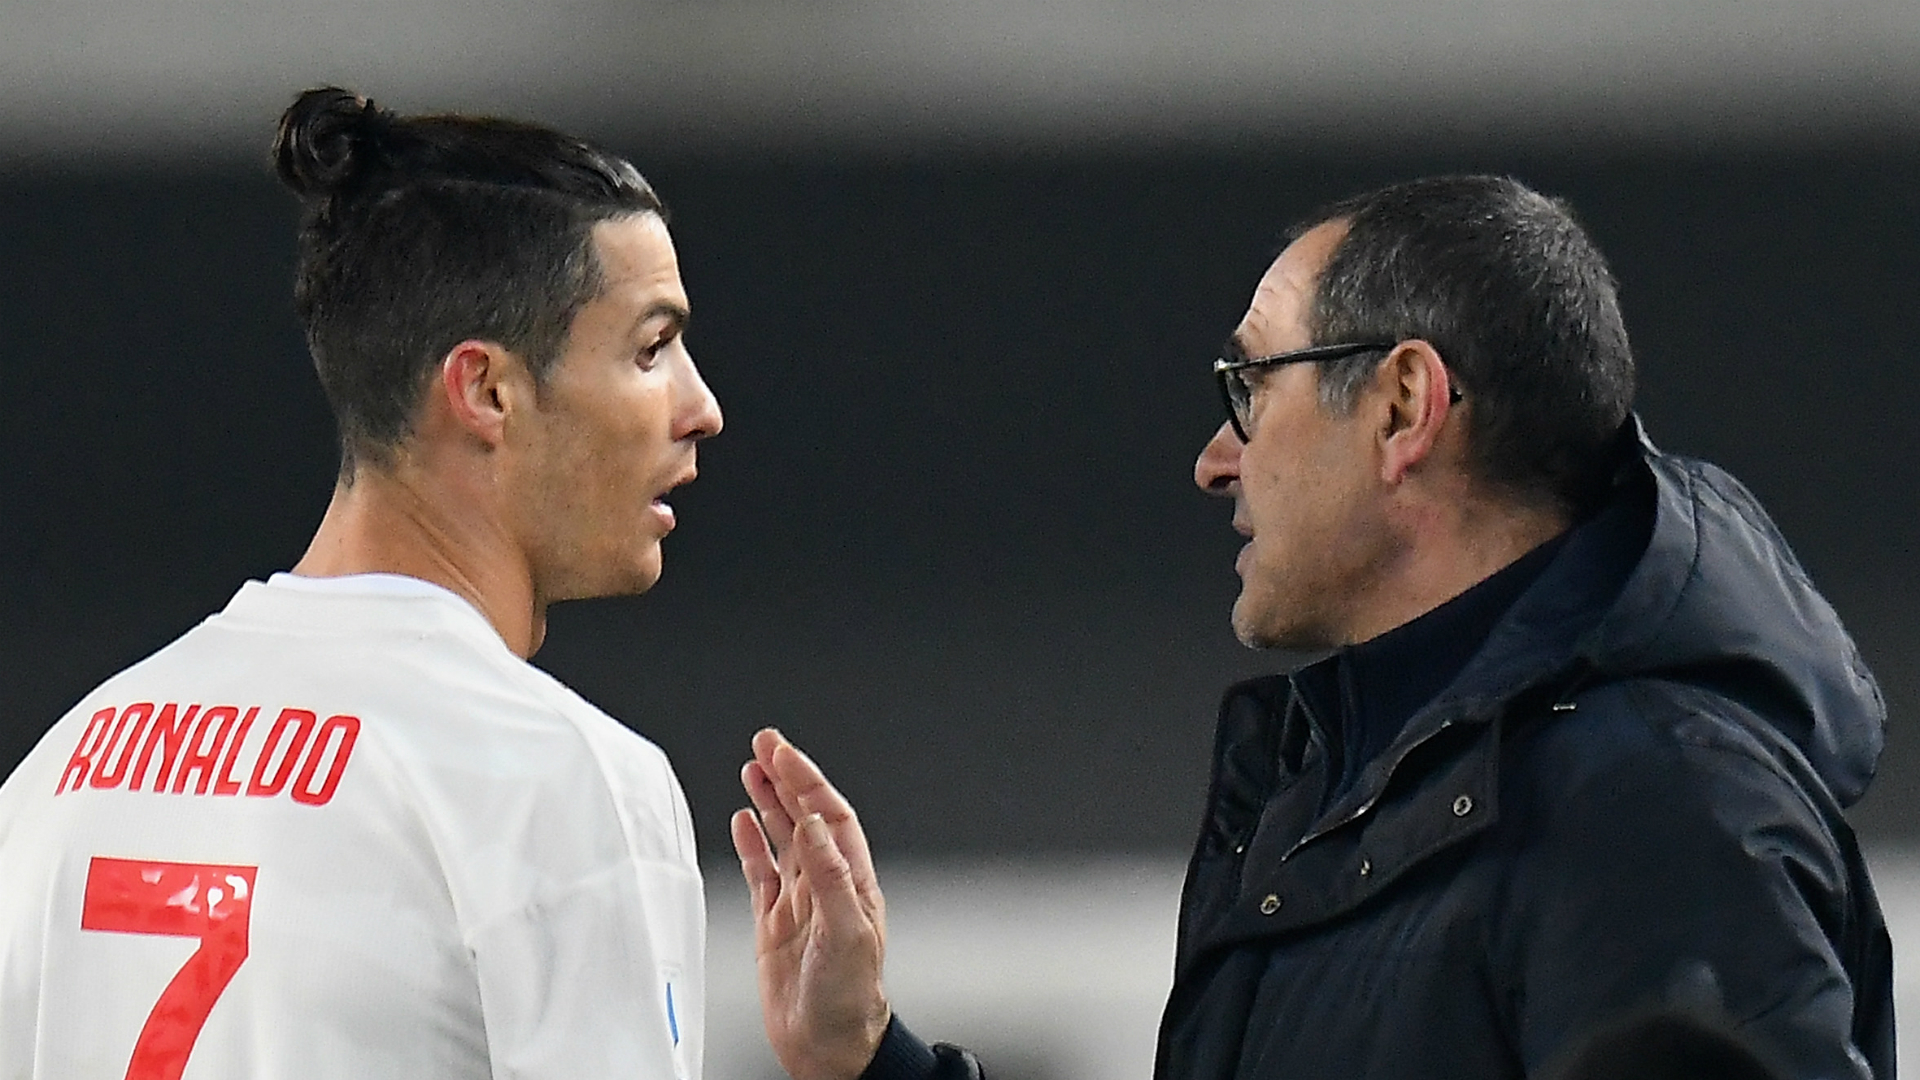 Ronaldo cannot play 75 games a year, says Sarri